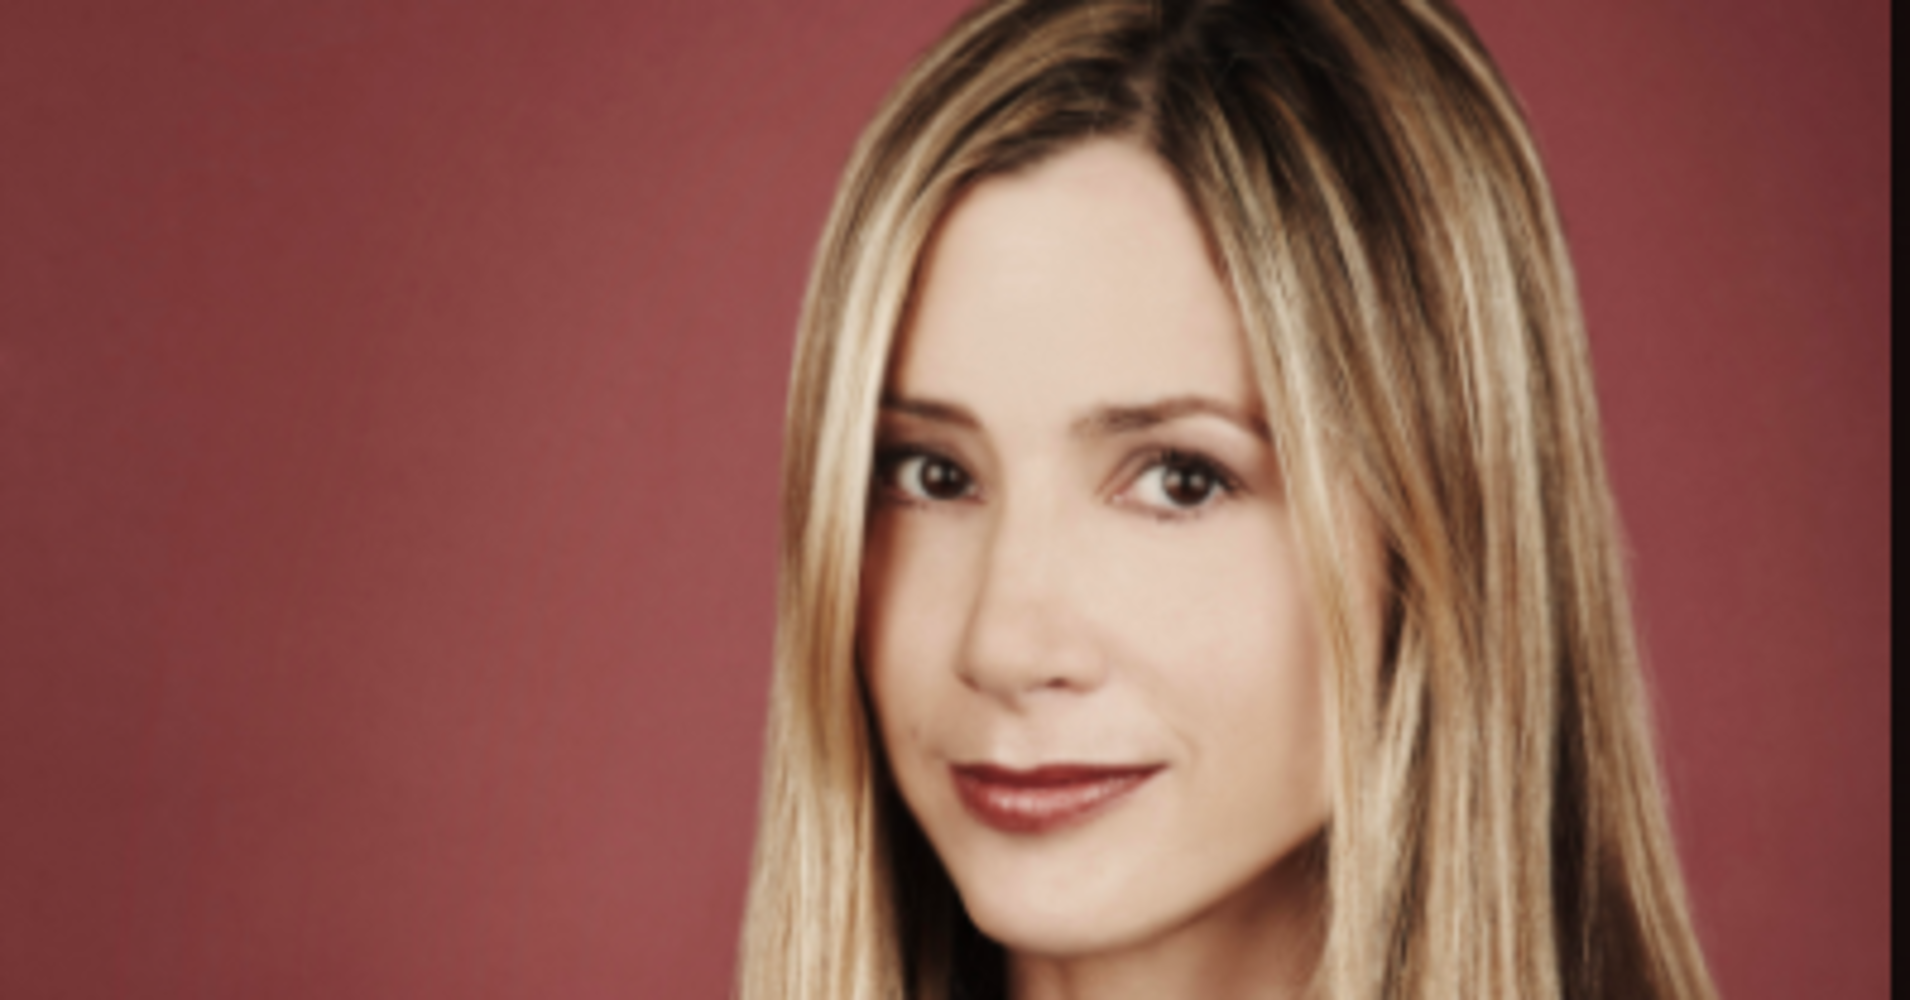 Exclusive: Mira Sorvino's Open Letter To Dylan Farrow